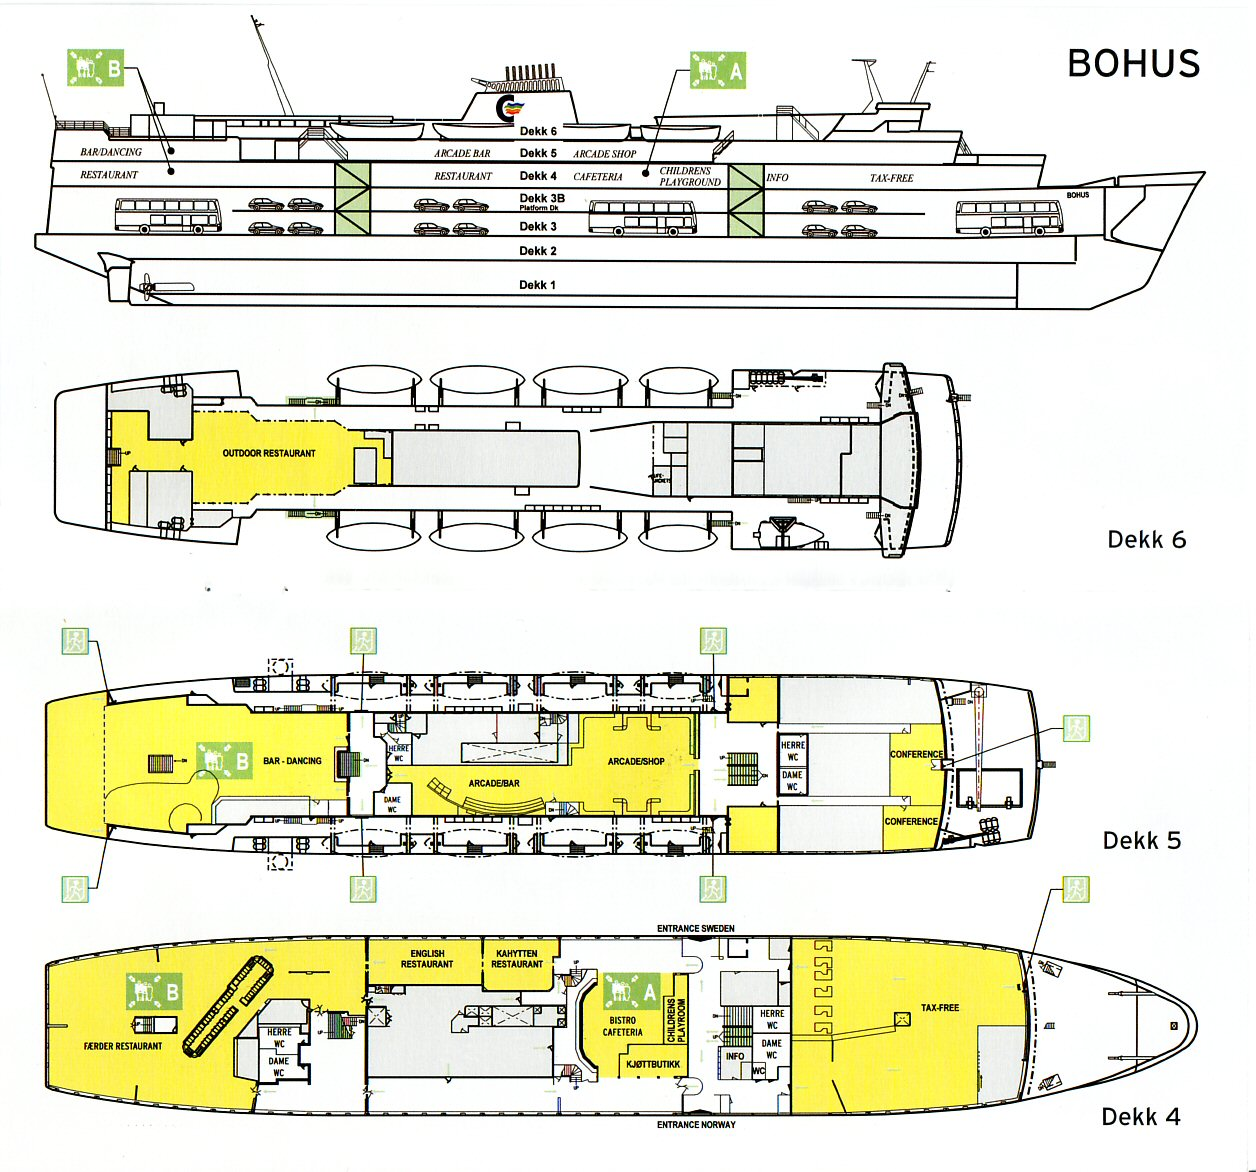 Deckplans Corsica 3 1 Engine Diagram Prinsessan Desire 1971 As Bohus 2009 Deckplan